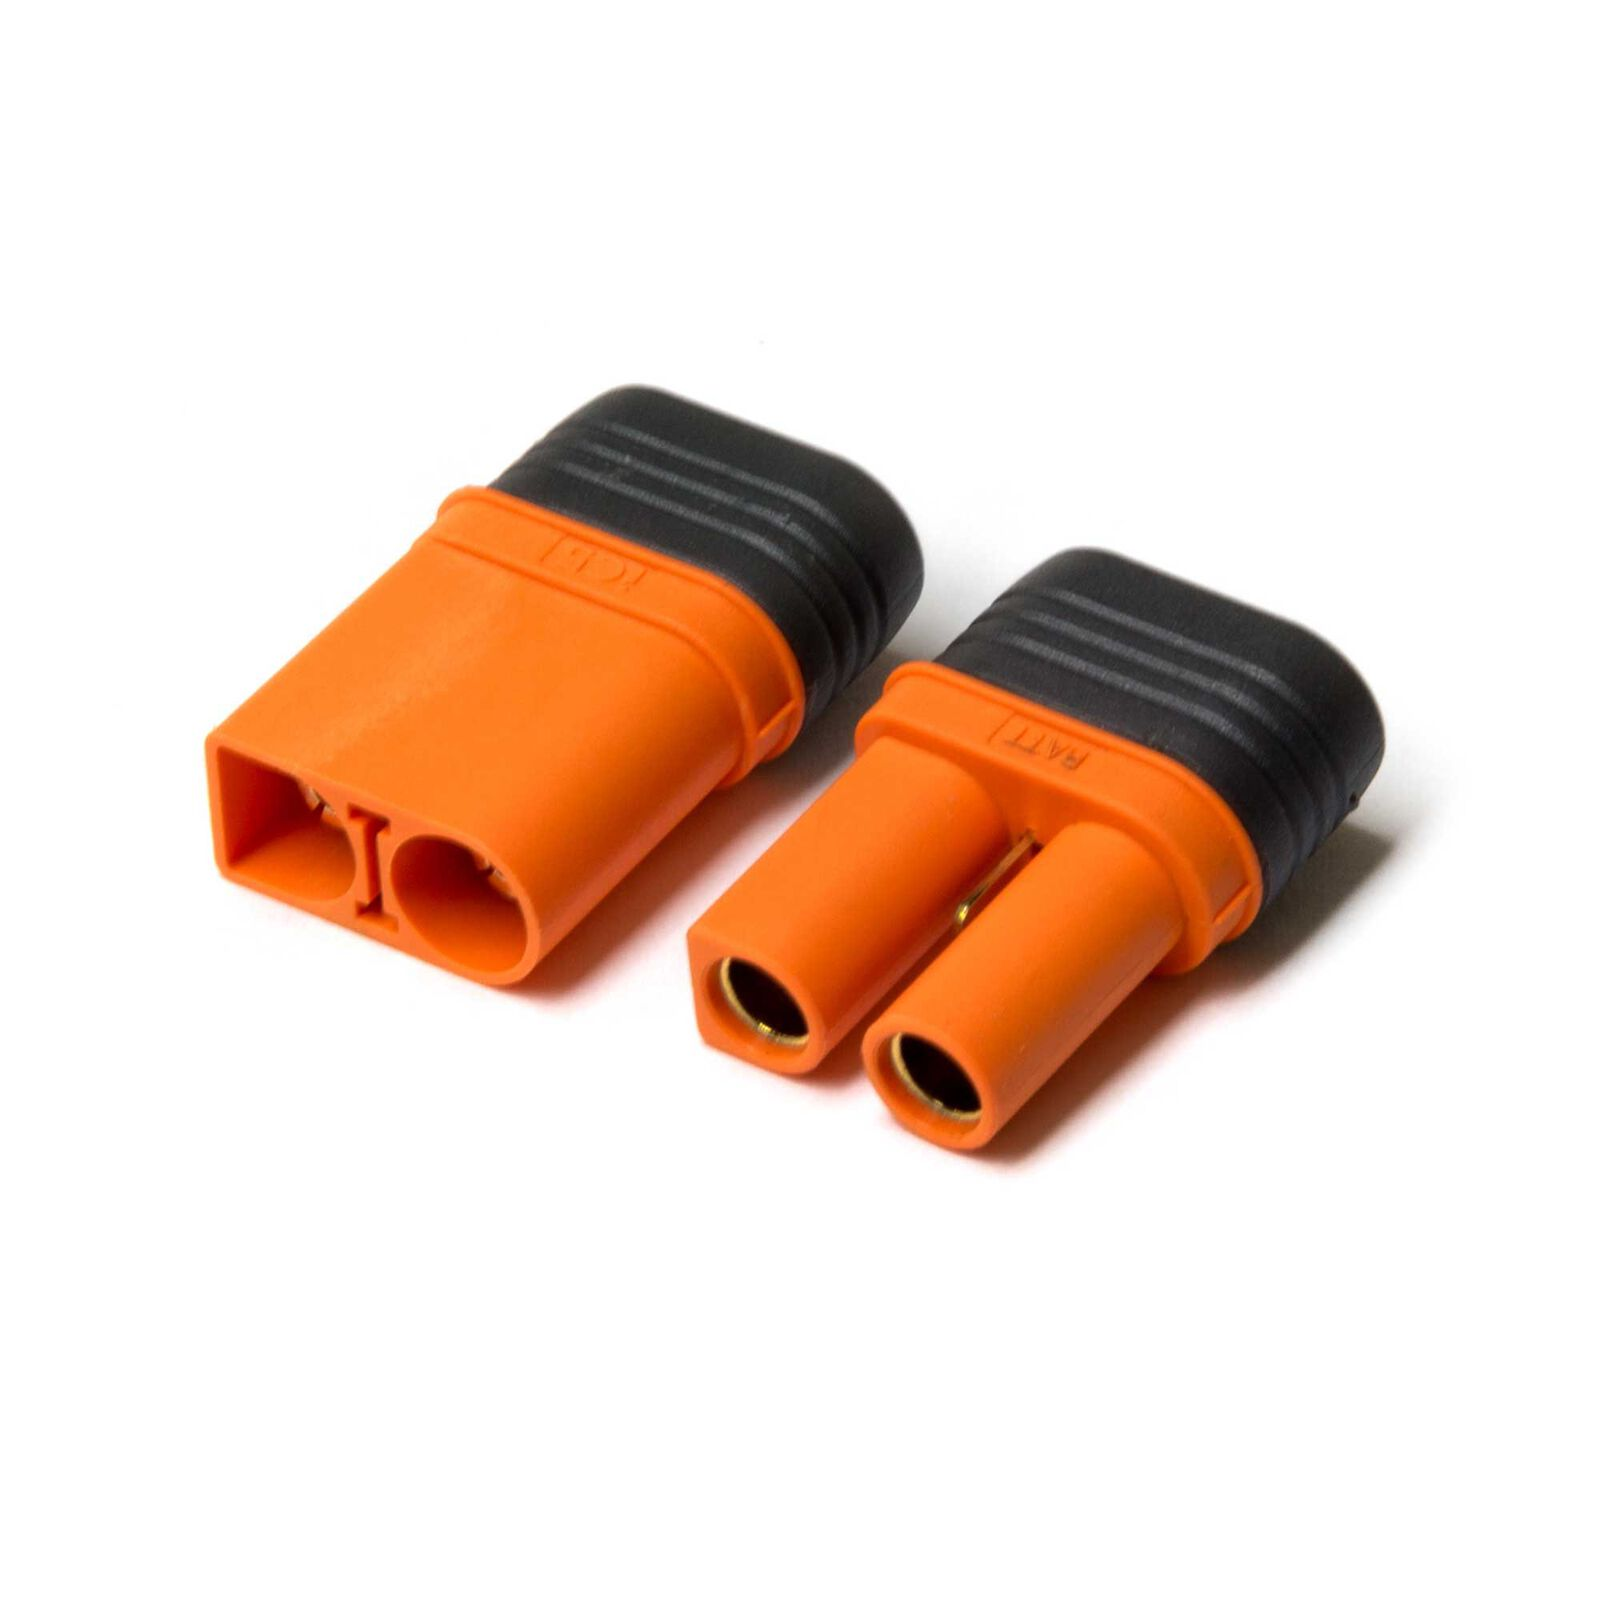 Connector: IC5 Device and IC5 Battery Set